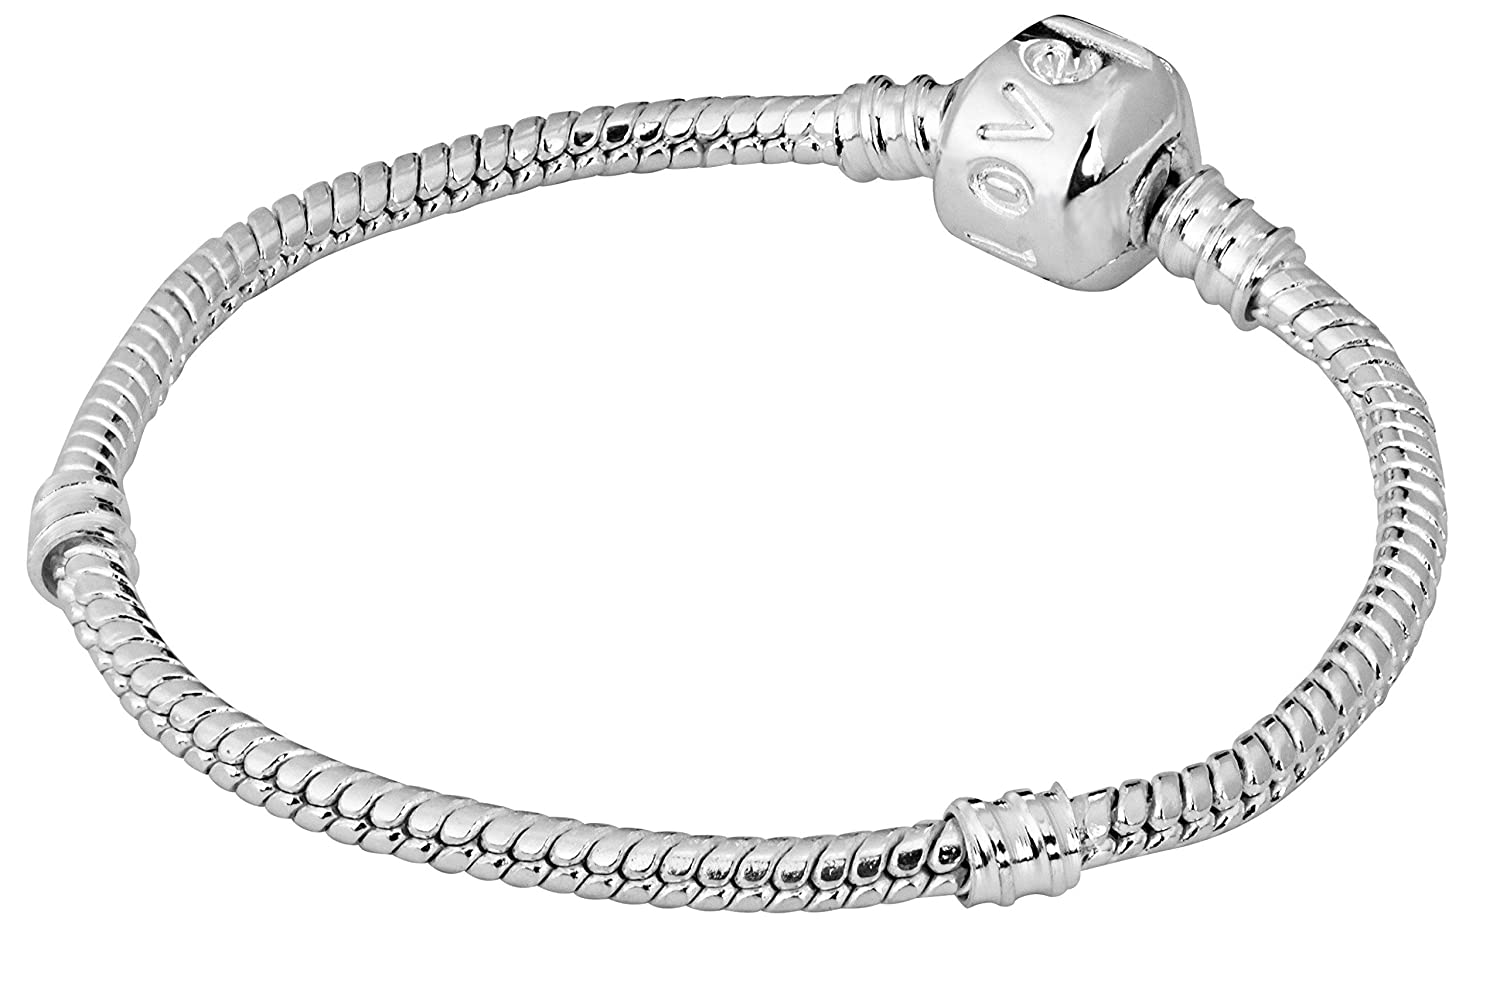 Penny /& Piper 6 Inch Sterling Silver Plated Love Snap Barrel Clasp Snake Chain European Charm Bracelet for Kids//Children